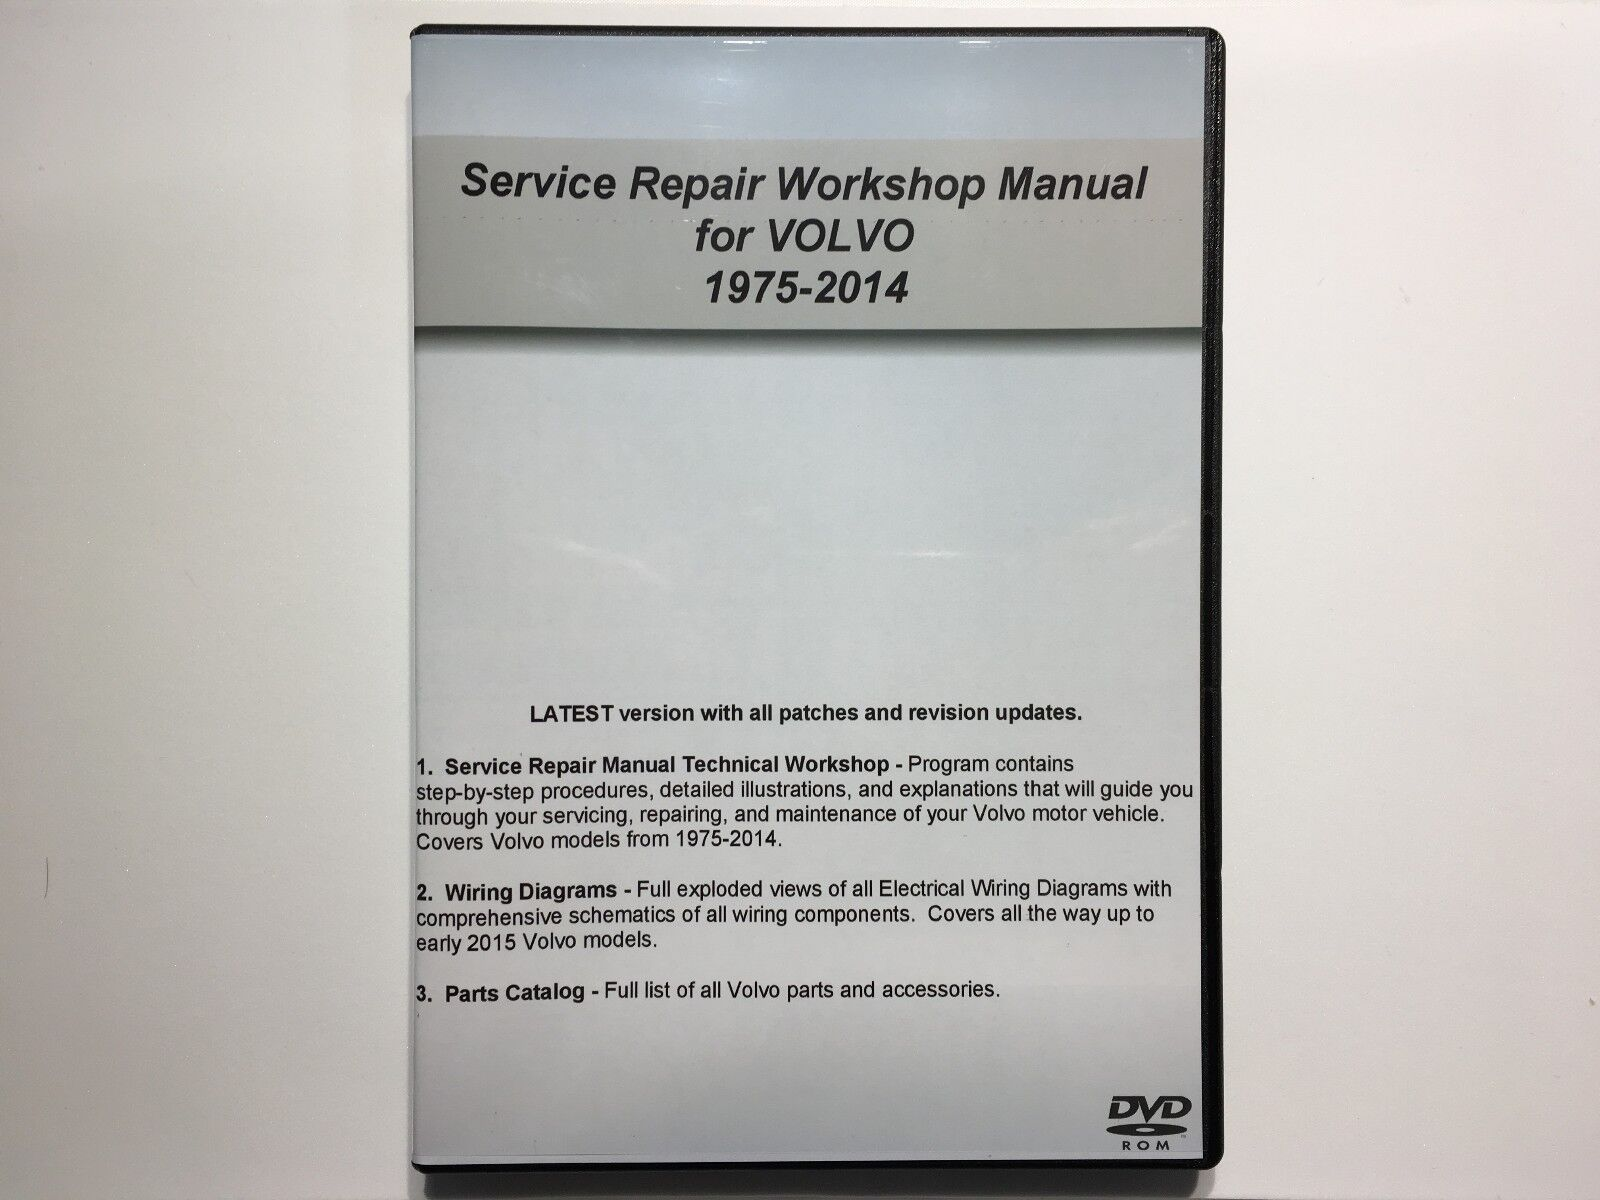 Toyota Tacoma 2015-2018 Service Manual: Open or Short in Front Speed Sensor RH Circuit (C1405,C1406)